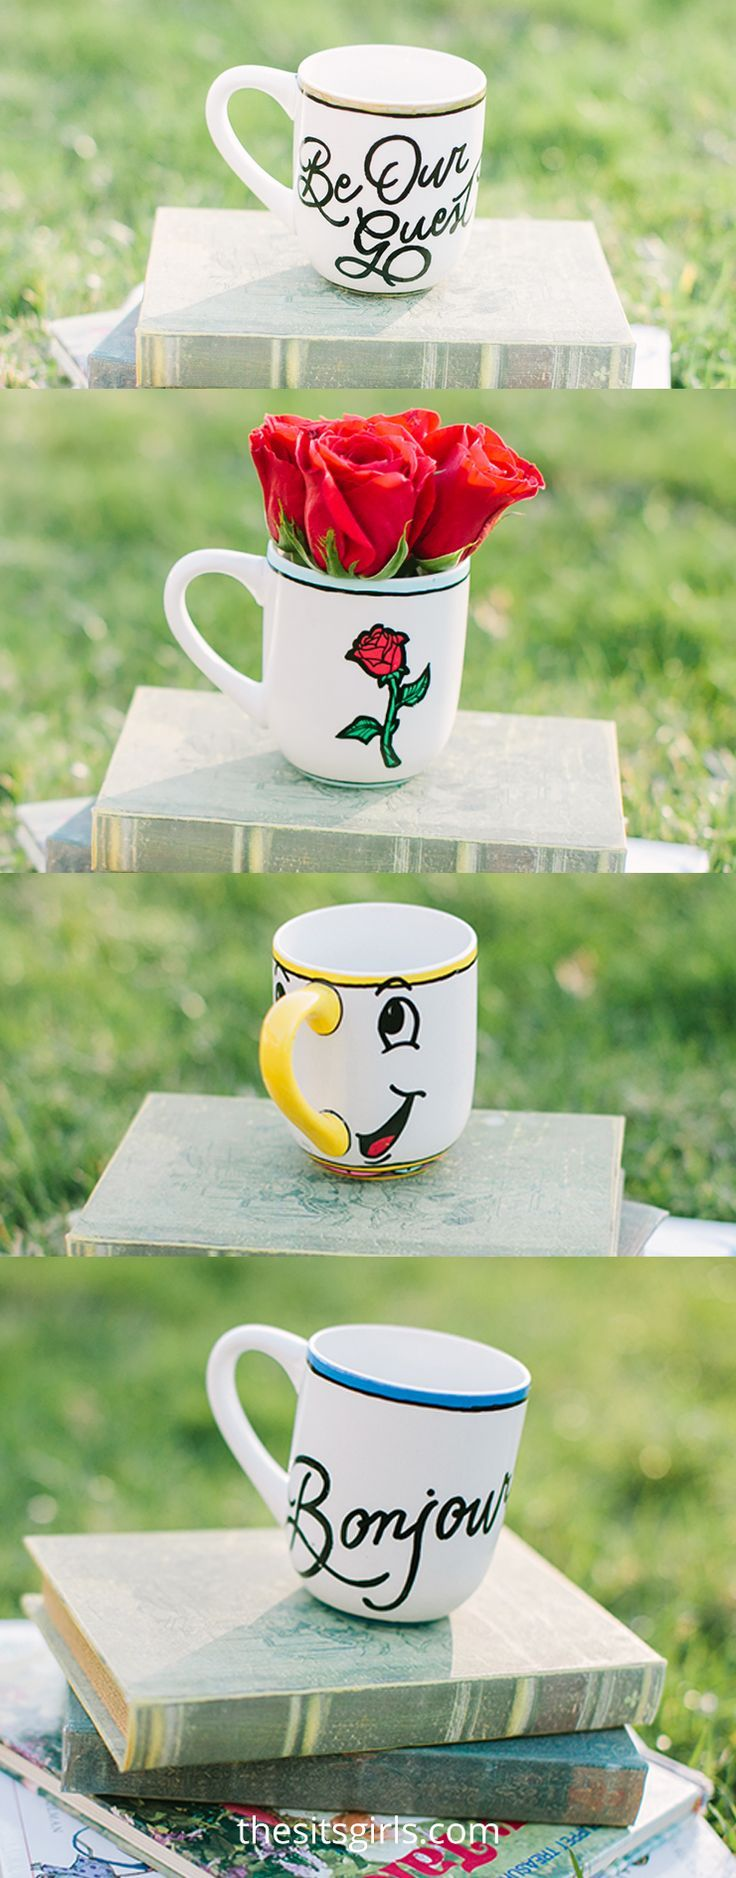 Make your own Beauty and the Beast Chip mug for a fairytale tea party! Includes step by step video tutorial to create Chip and other Belle inspired mugs.